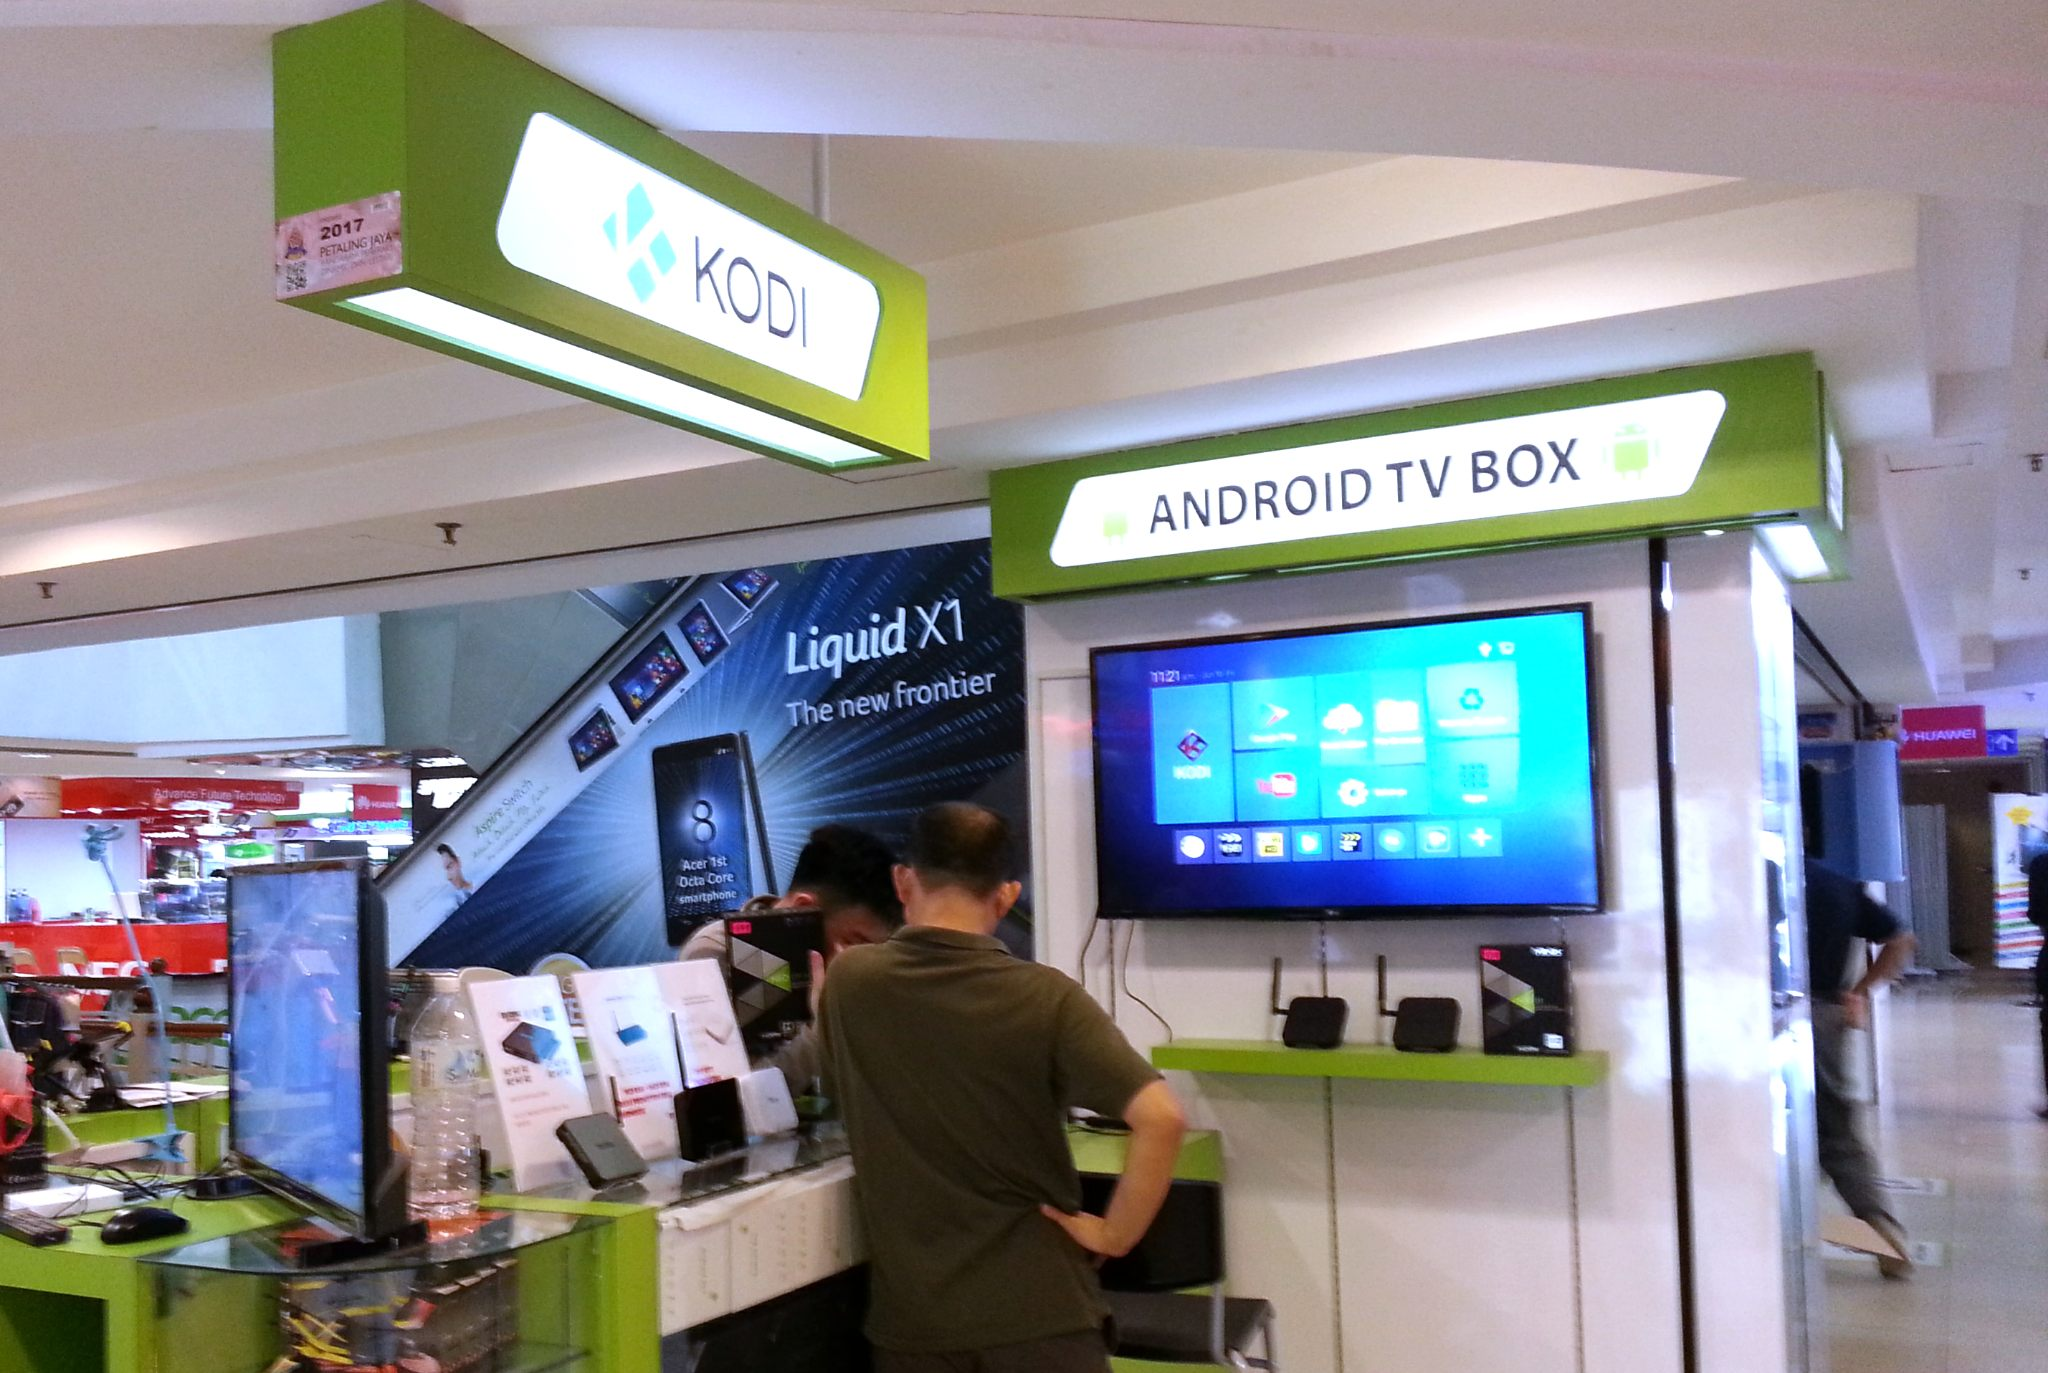 Android boxes cheap and easy to navigate, say users | The Star Online